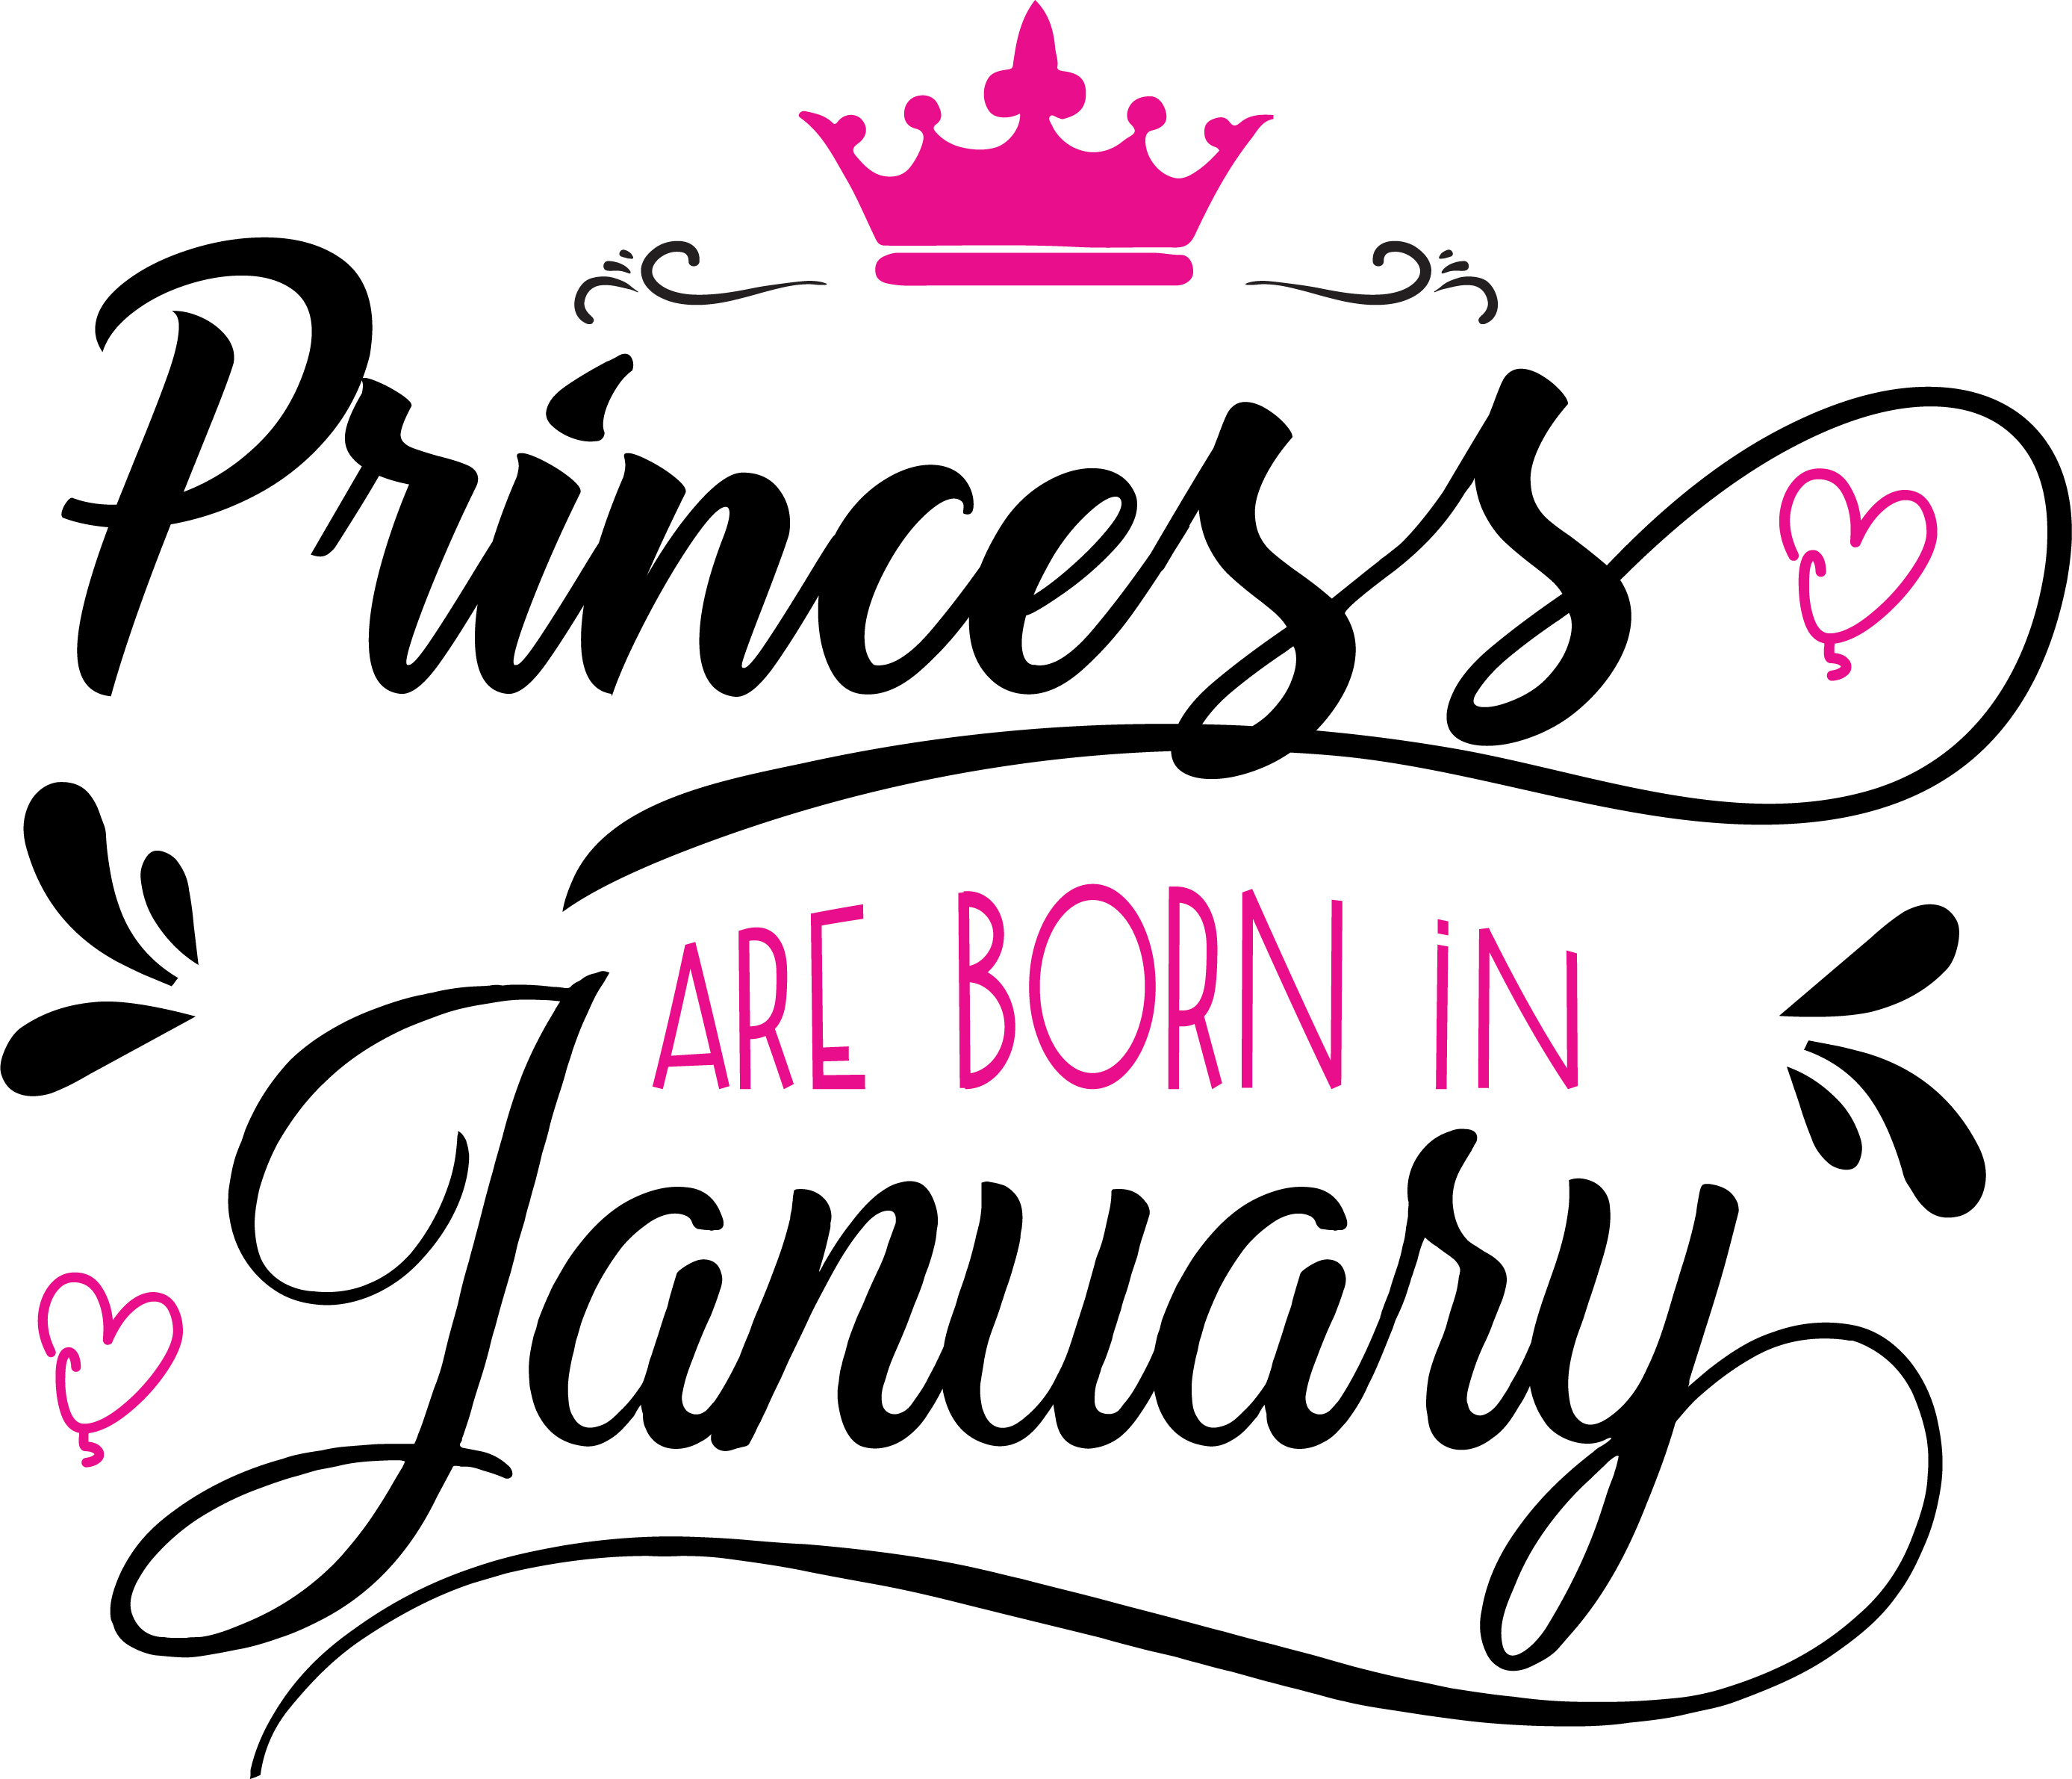 Princess are born in January Svg,Dxf,Png,Jpg,Eps vector file example image 2